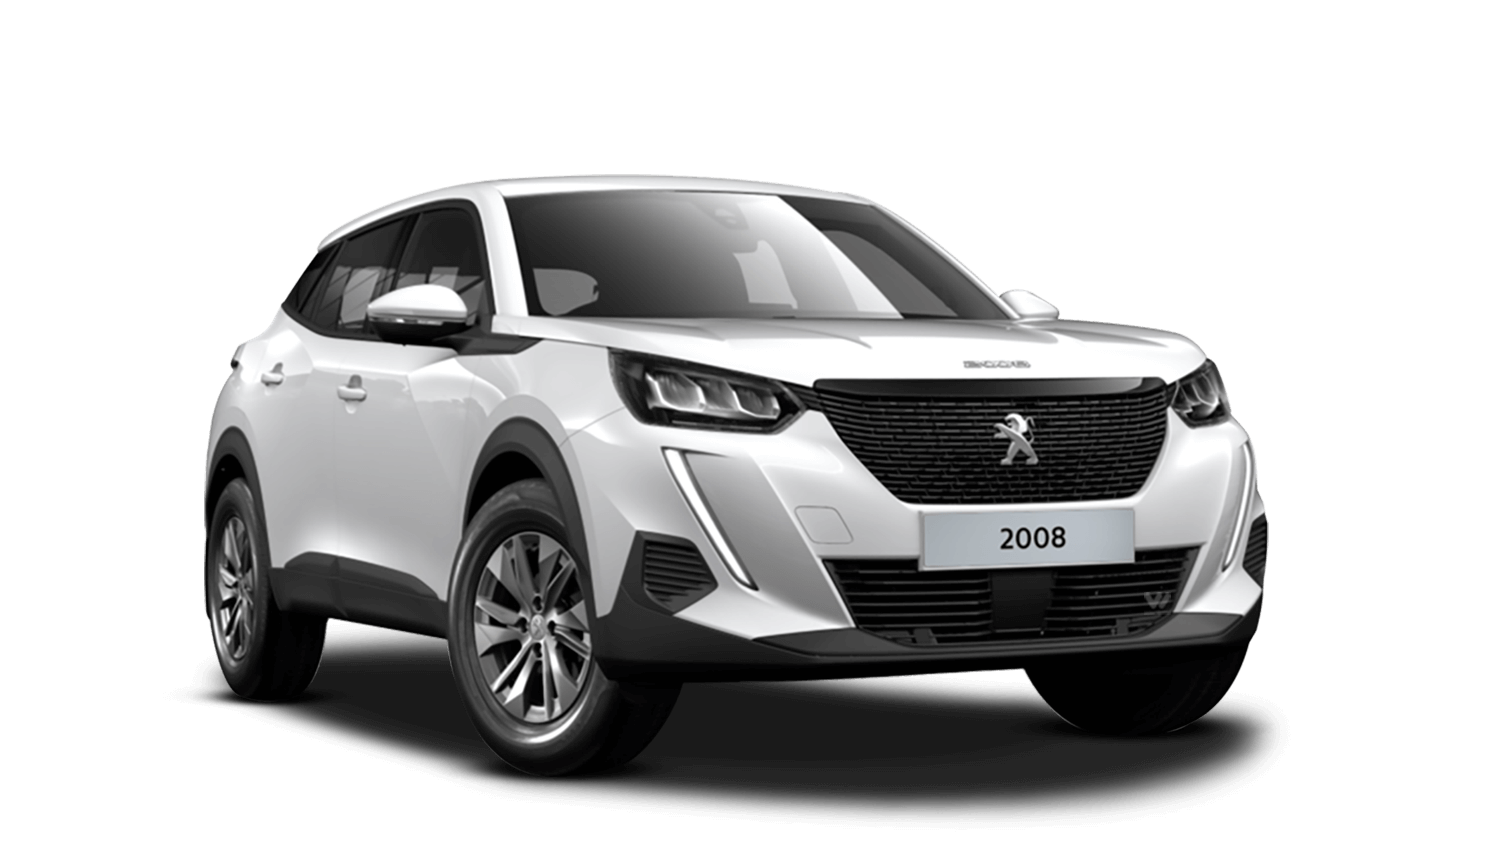 Bianca White All-new Peugeot 2008 SUV